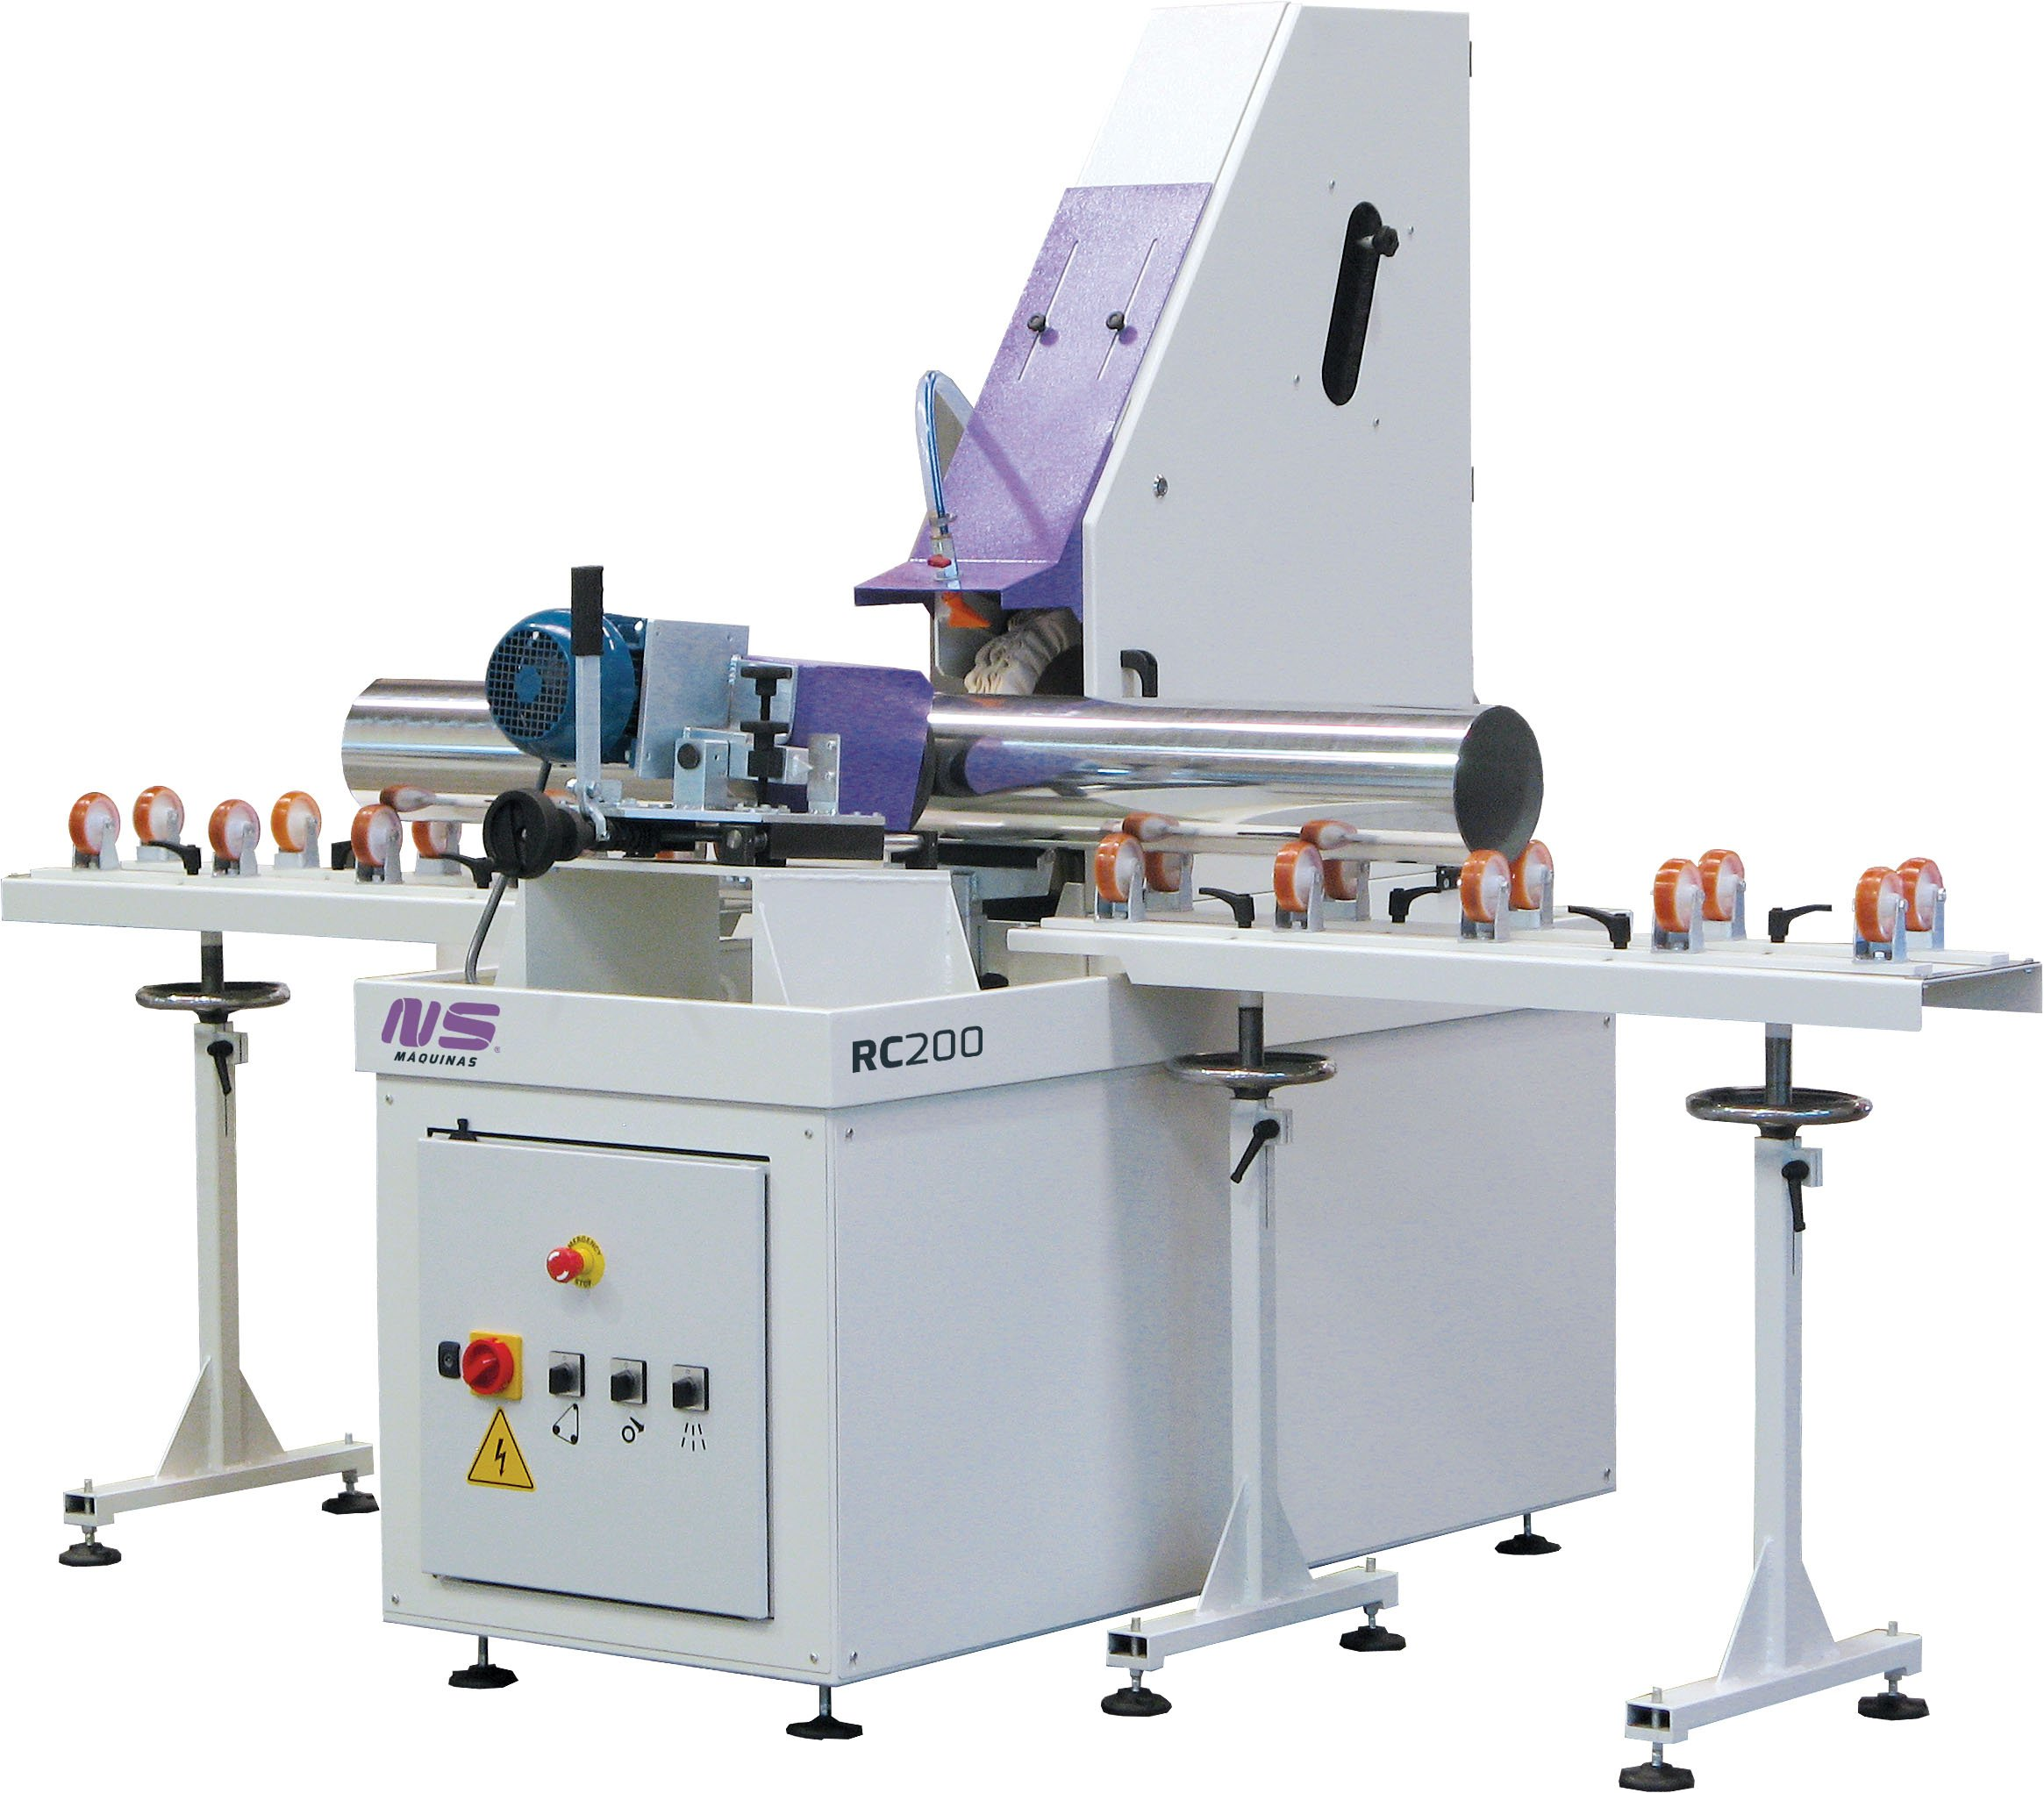 Mirror Polishing Machines - RC200